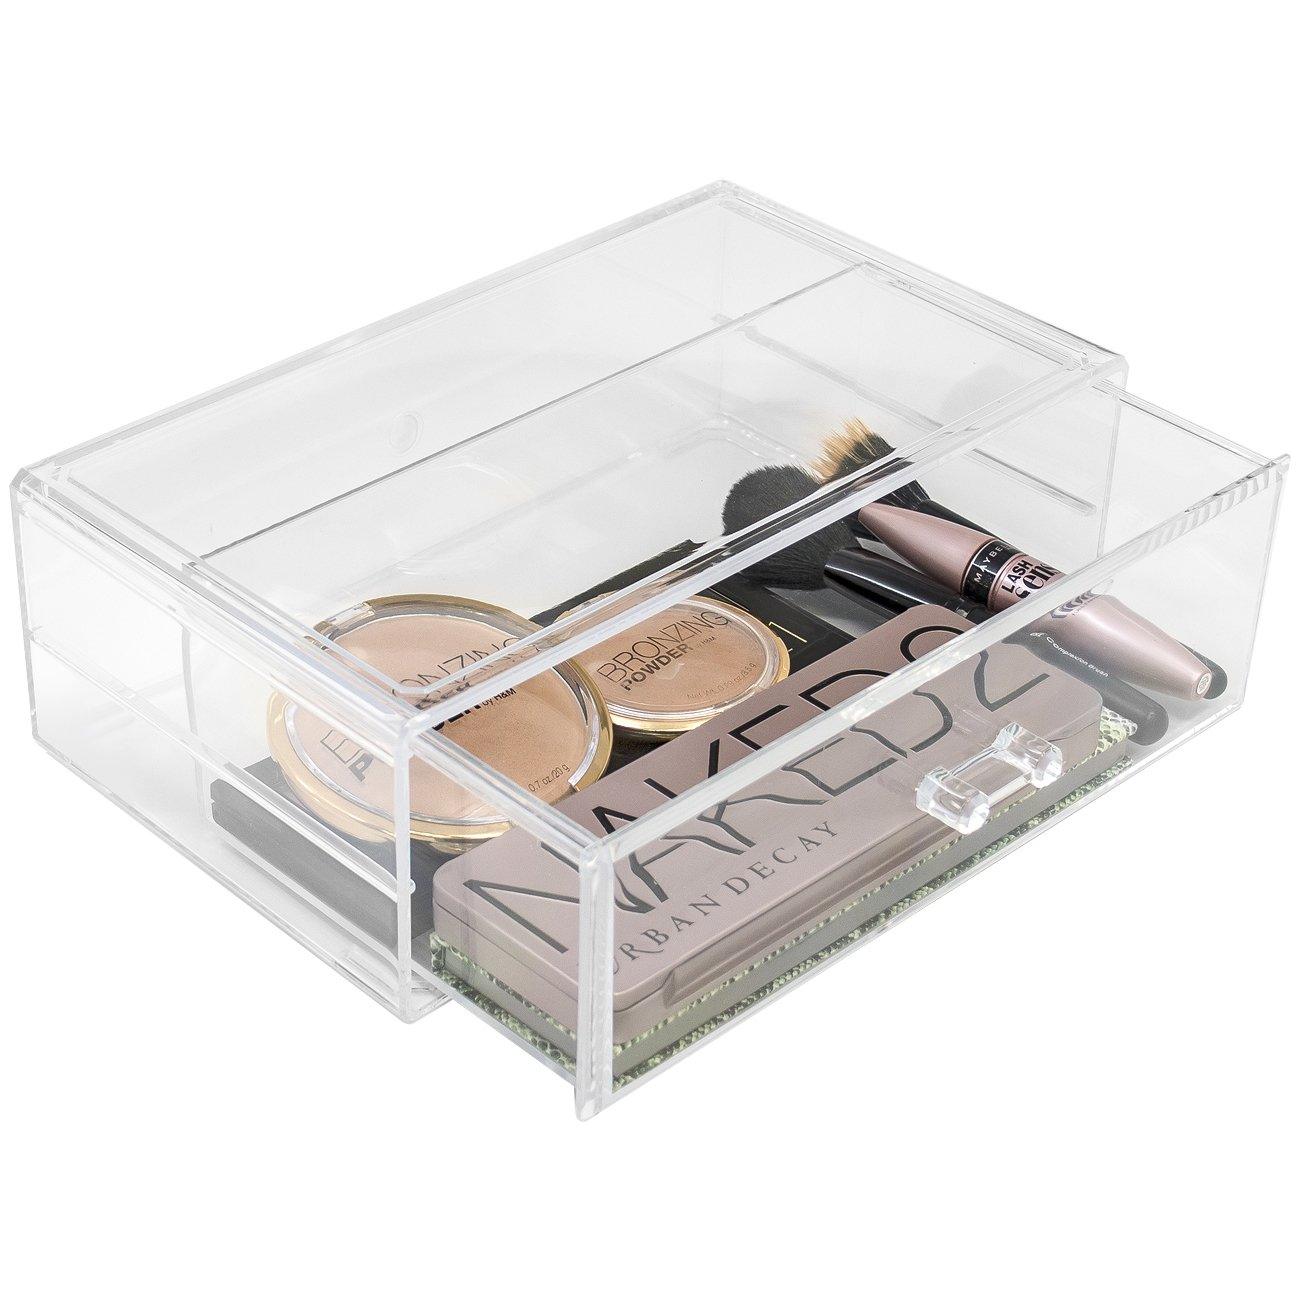 Sorbus Acrylic Cosmetics Makeup and Jewelry Storage Case Display Sets - Interlocking Drawers to Create Your Own Specially Designed Makeup Counter - Stackable and Interchangeable (Clear) MUP-SSET2-145